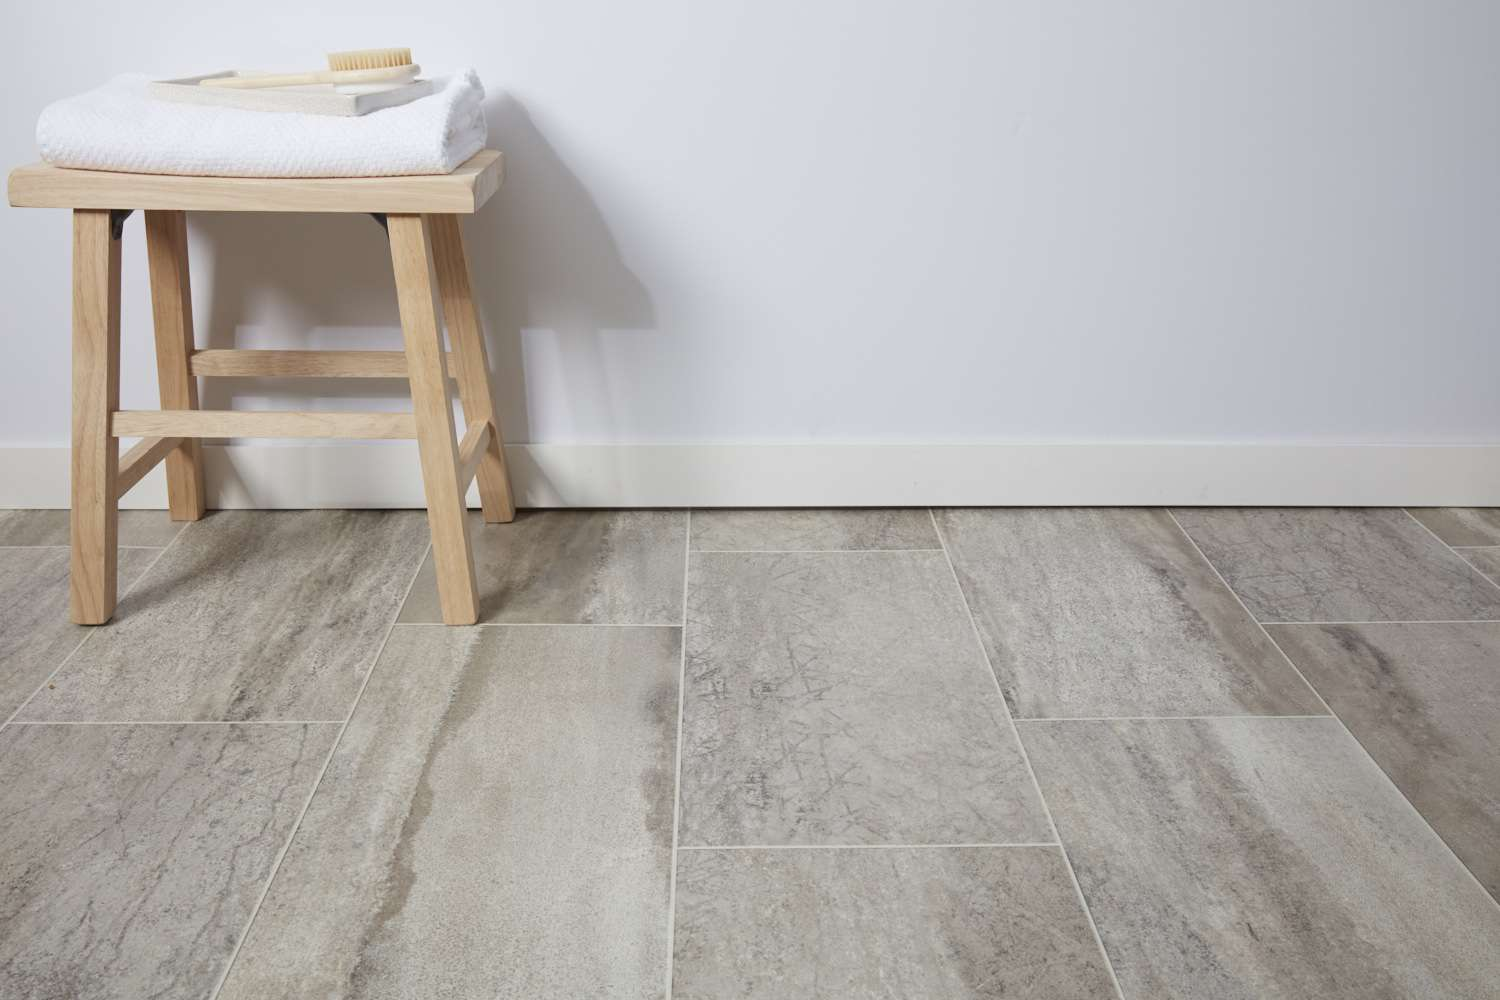 Sheet vinyl flooring with wooden stool and white folded towel